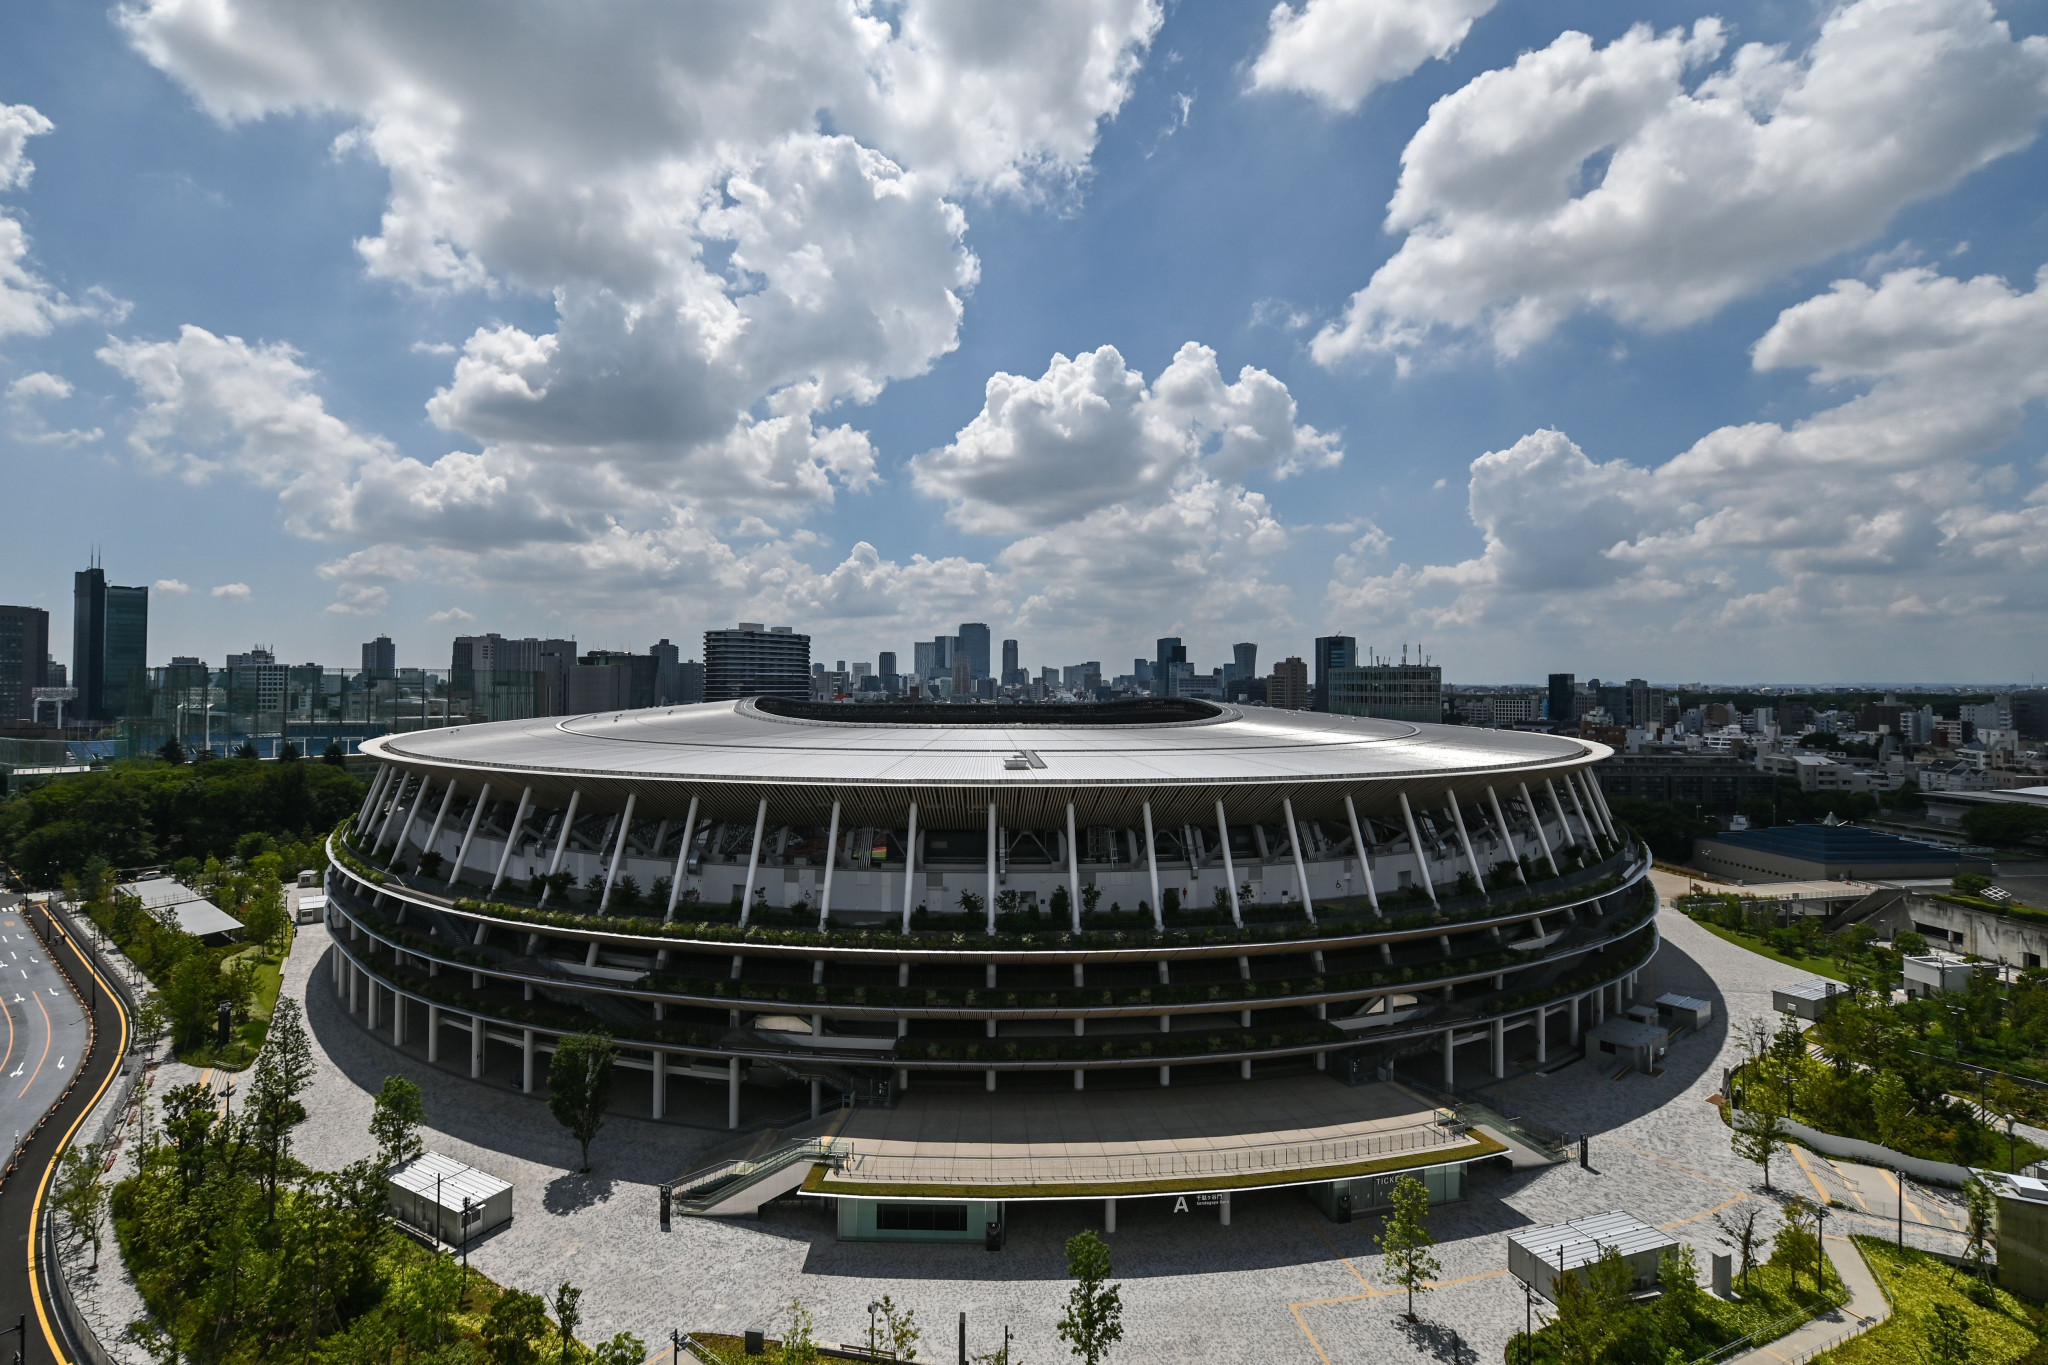 The National Stadium in Tokyo is set to host the Opening and Closing Ceremonies of next year's Olympic and Paralympic Games ©Getty Images